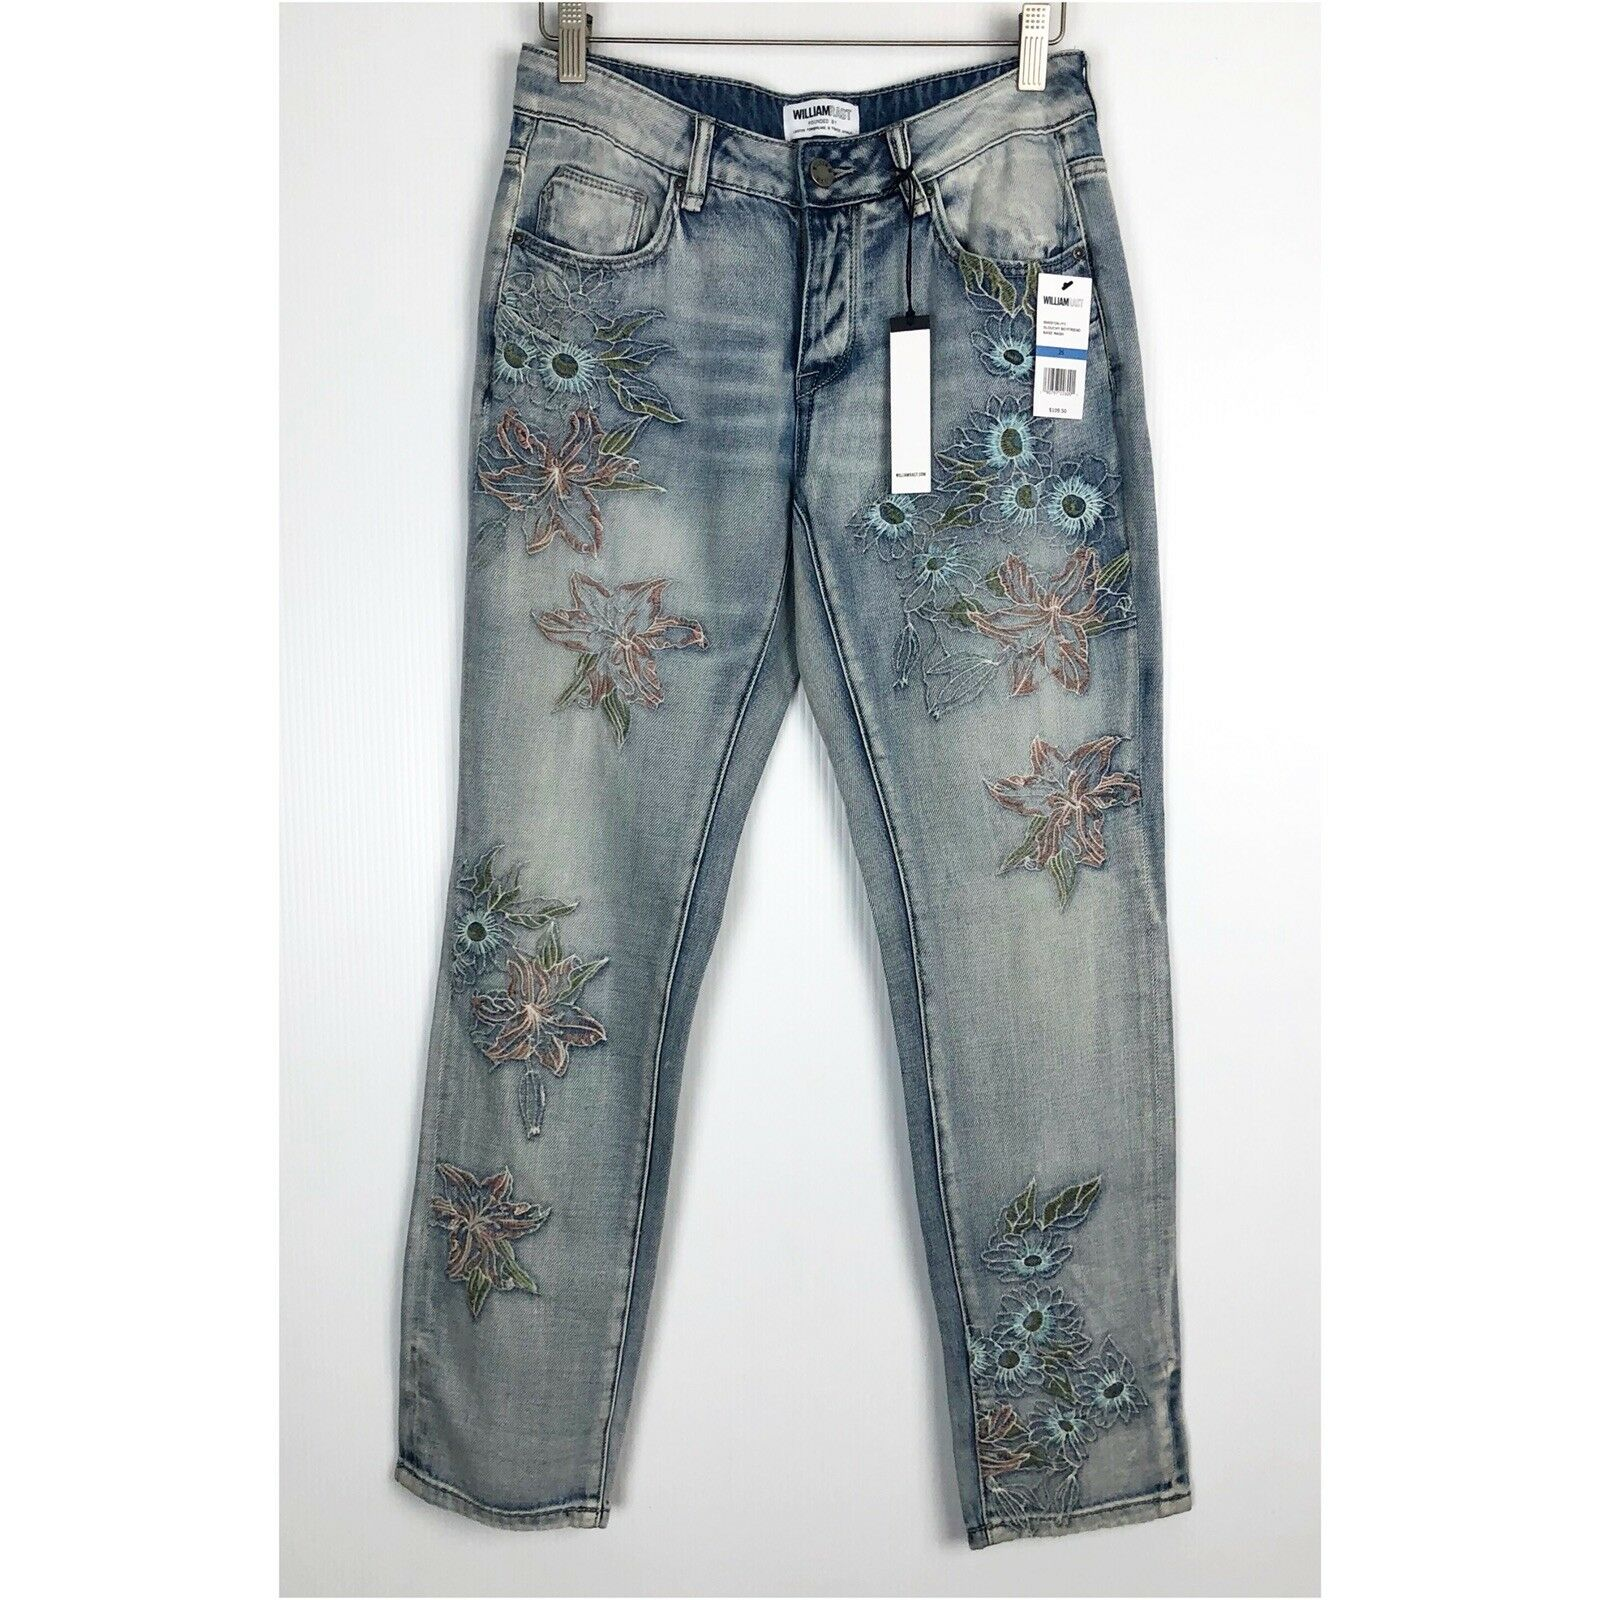 NWT WILLIAM RAST Size 25 My Ex's Jean in Embroidered Floral Relaxed Fit